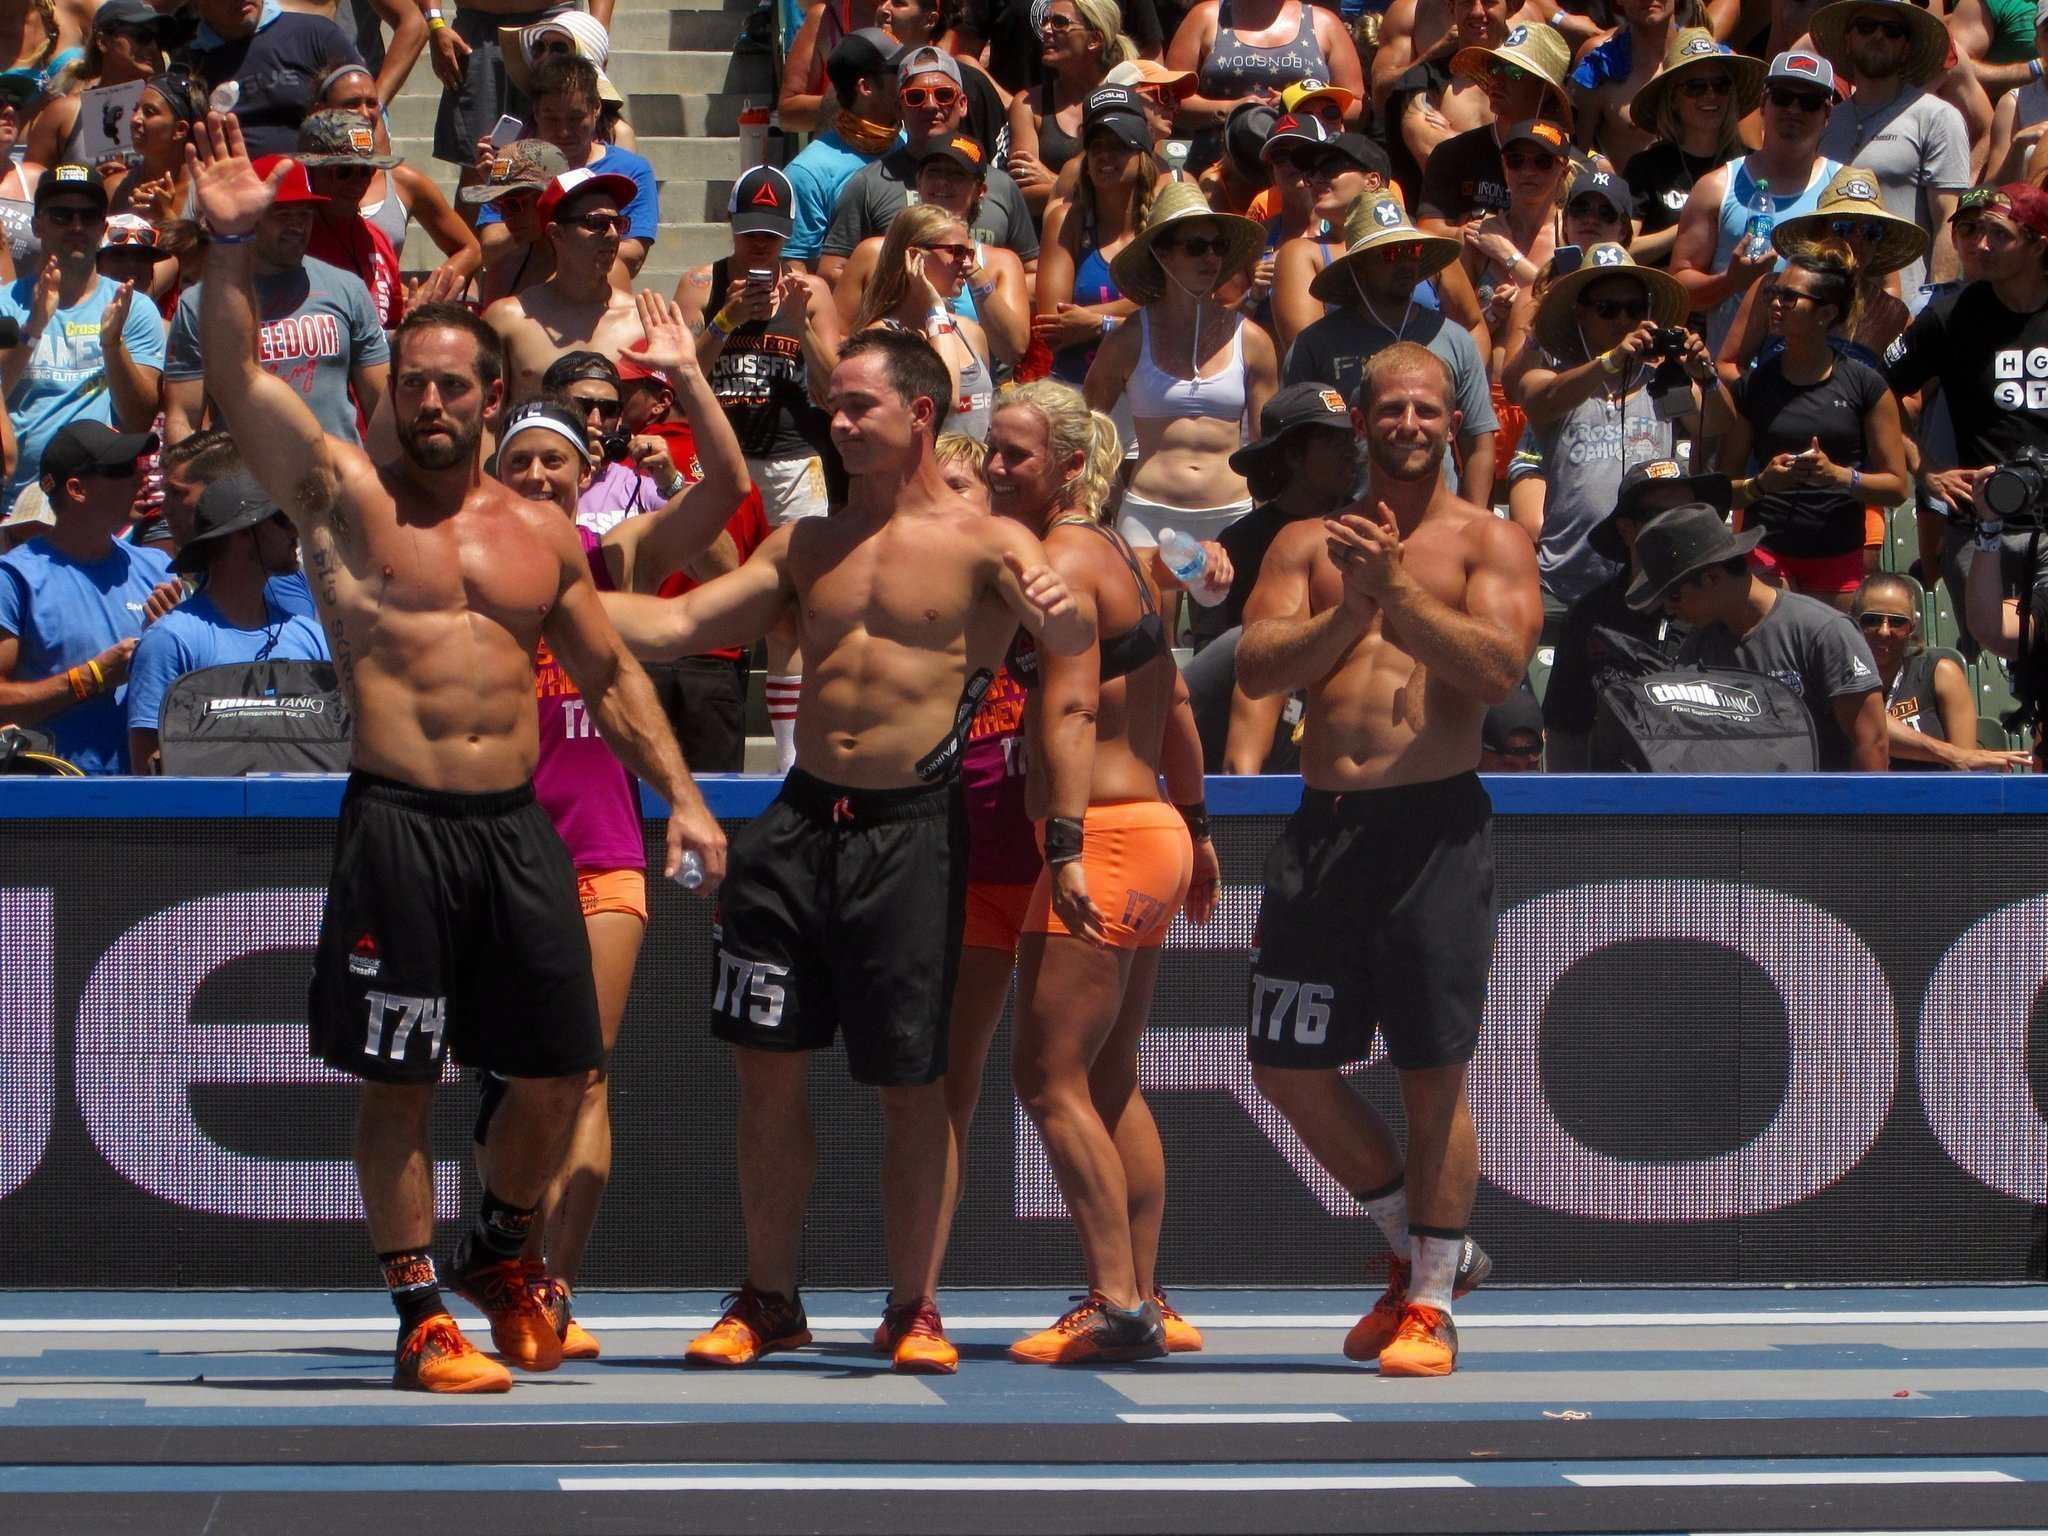 rich froning leads team to victory at crossfit games the san diego